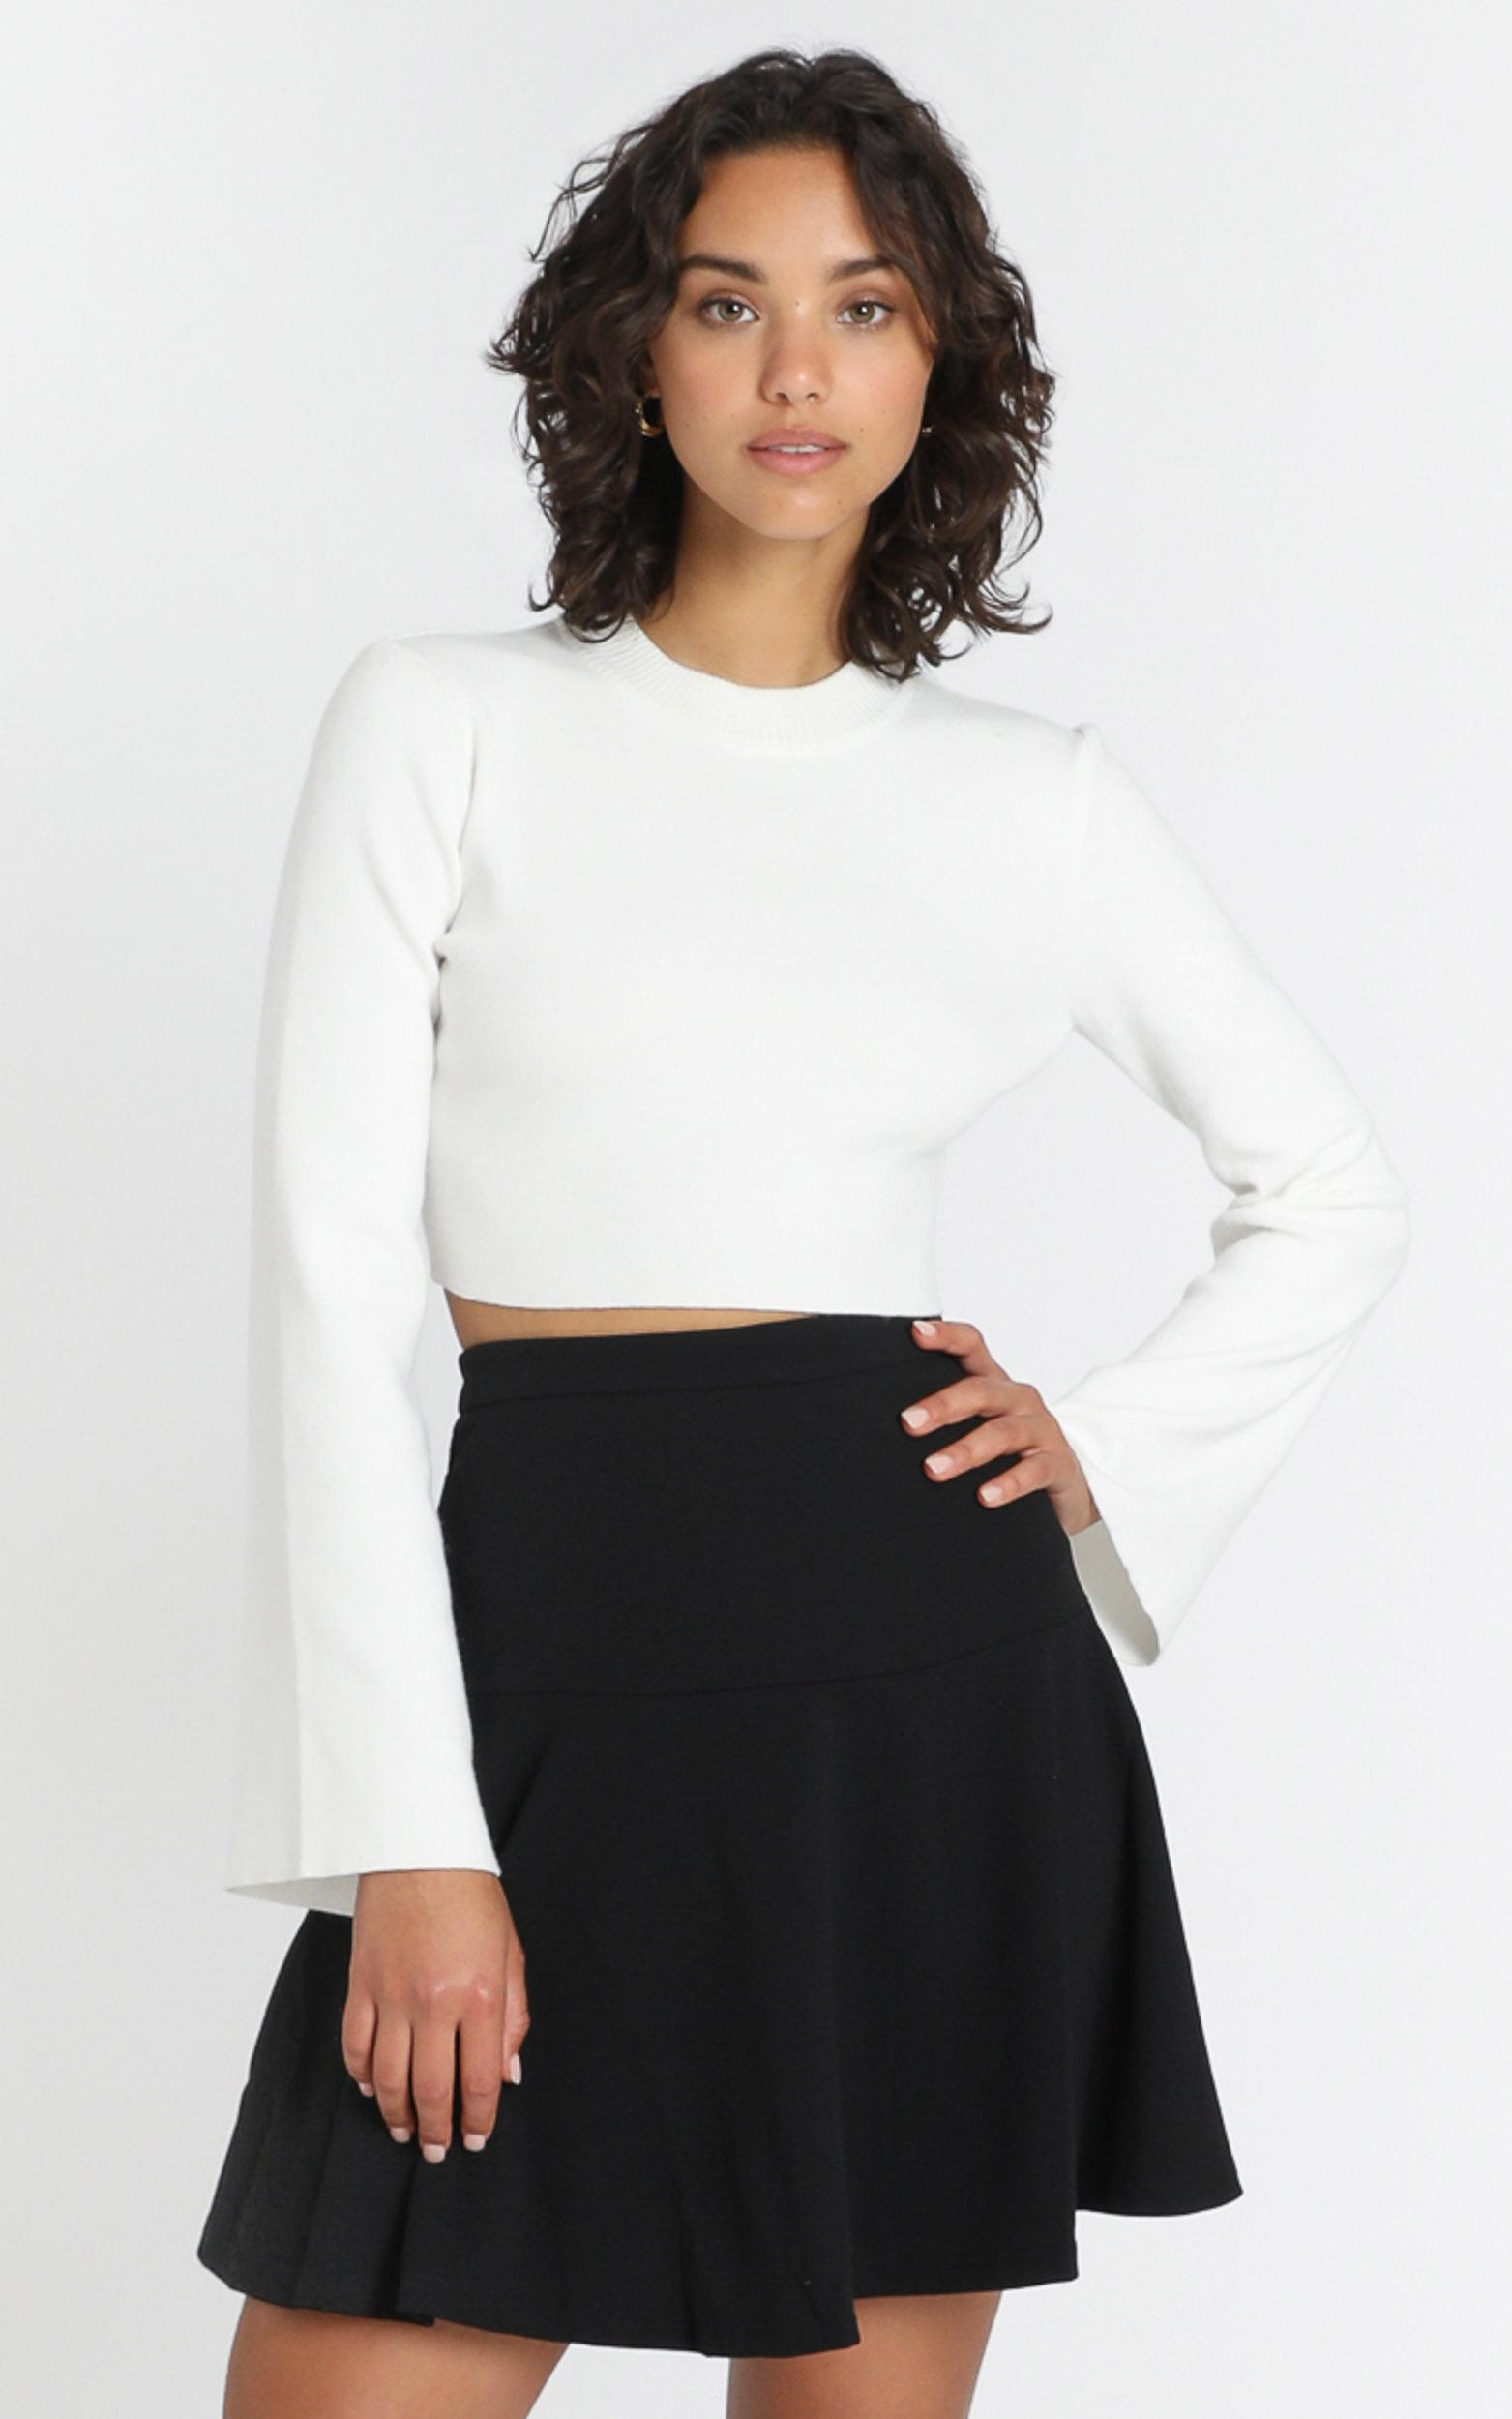 Synergy Skirt in black - 6 (XS), Black, hi-res image number null